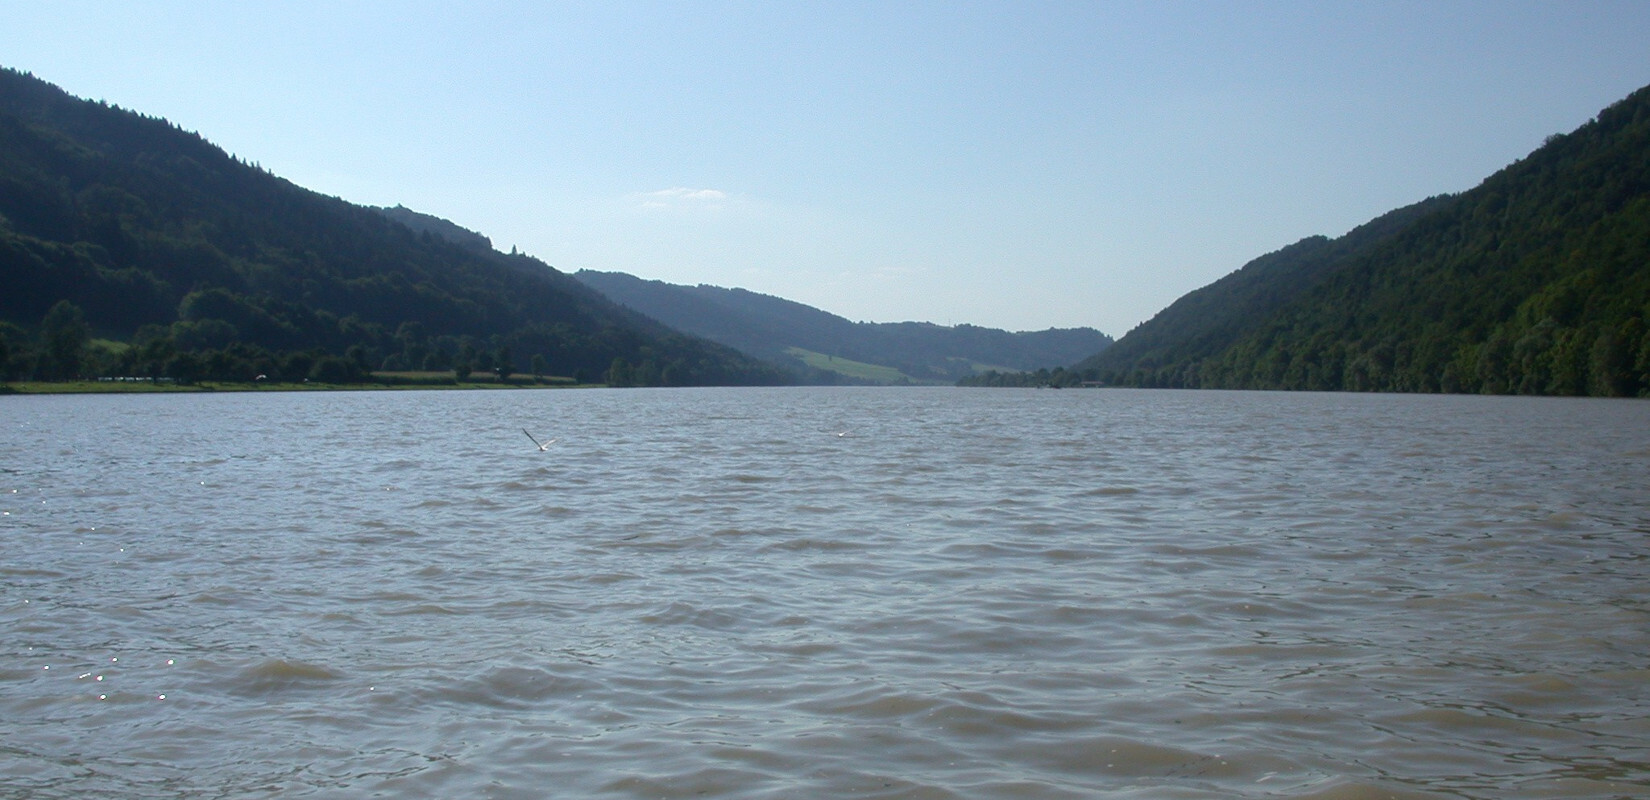 The river Danube near Jochenstein